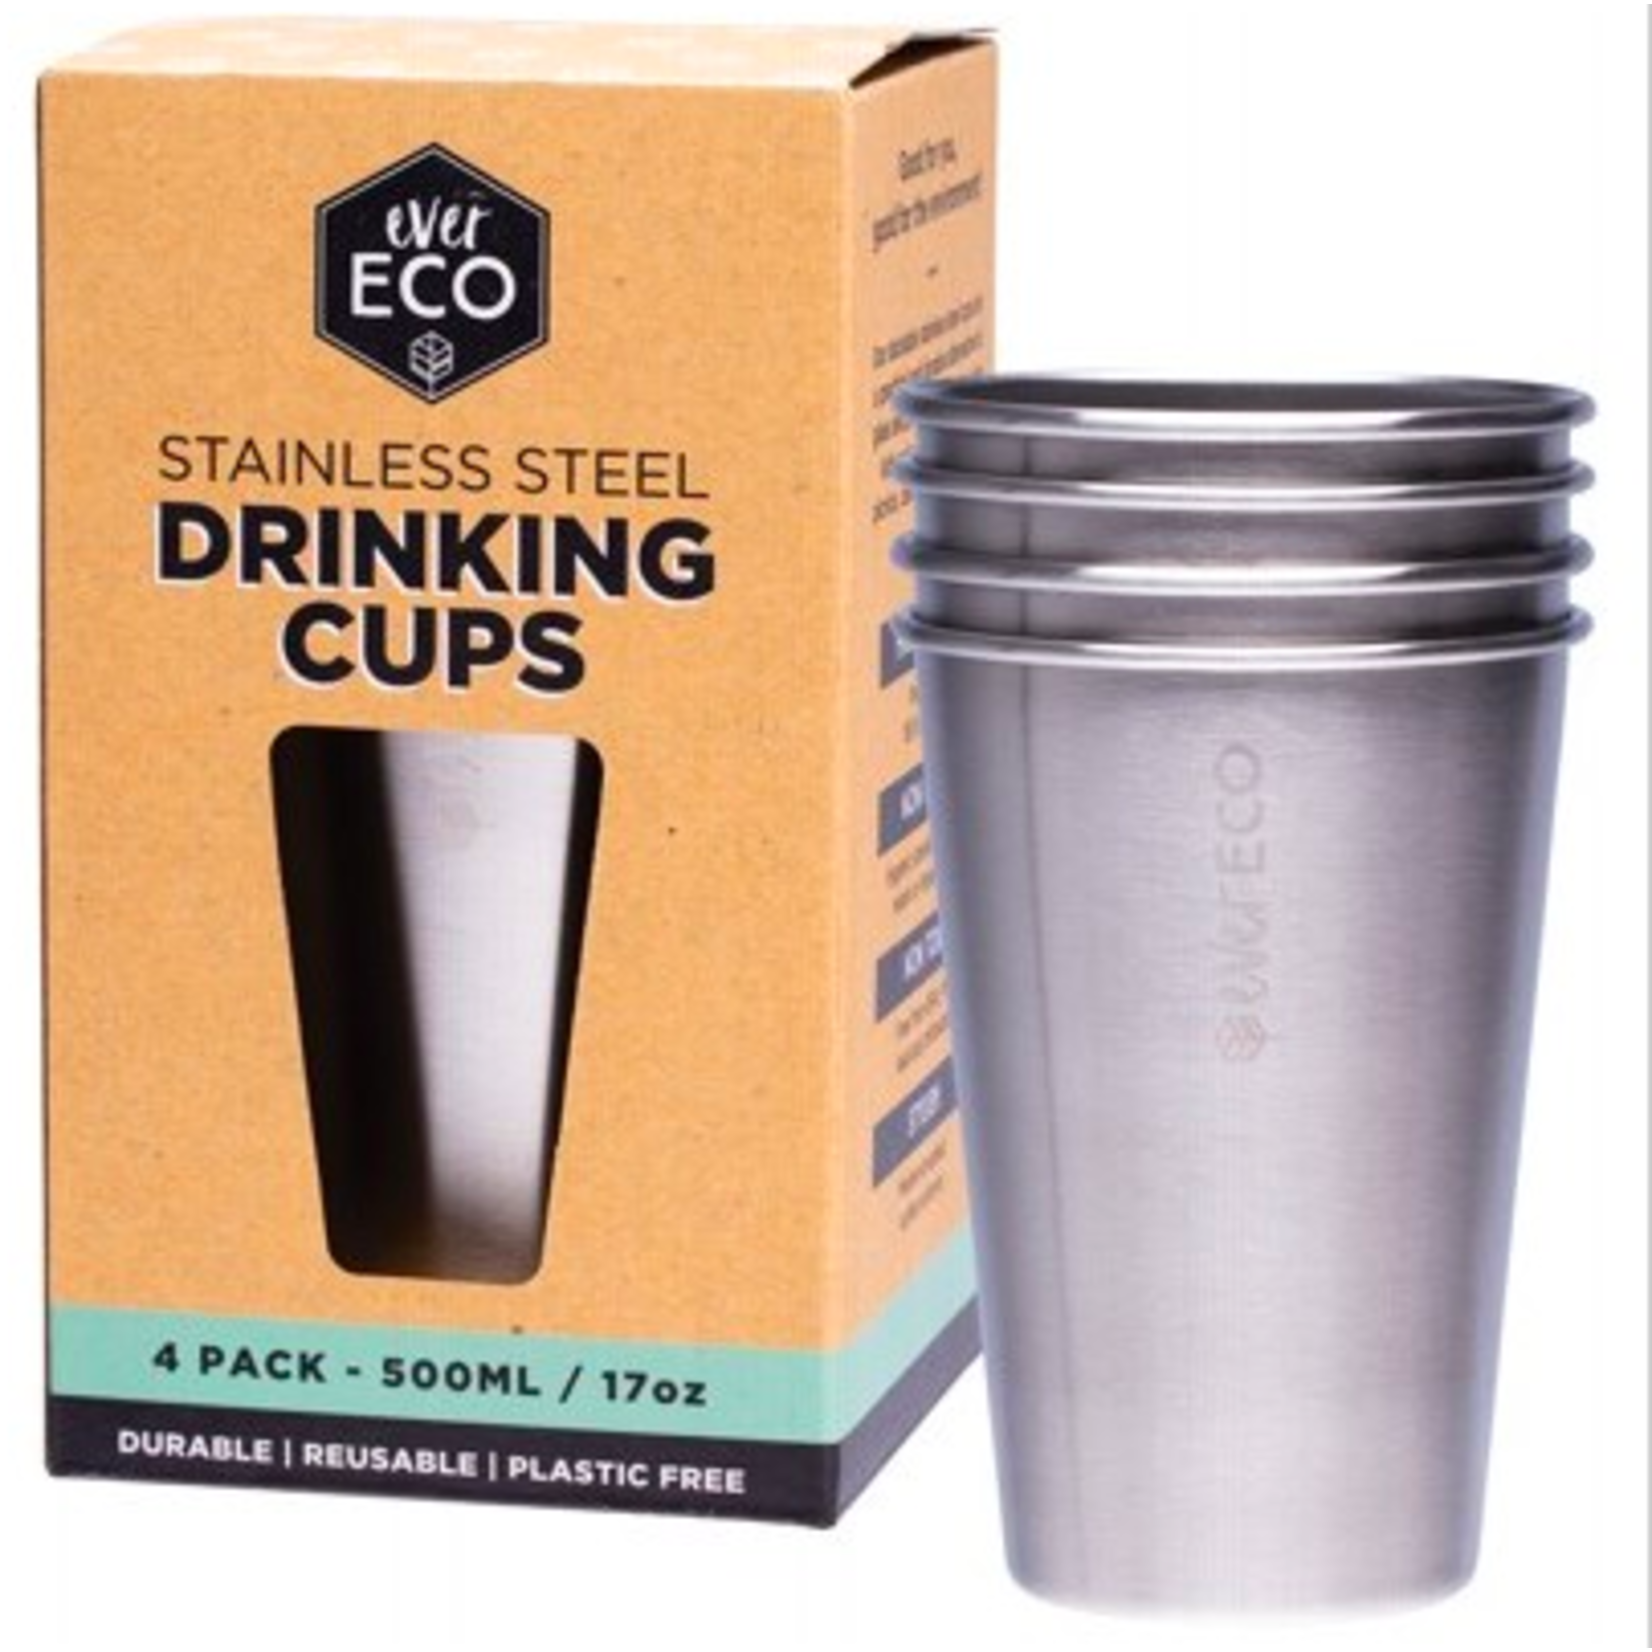 Ever Eco Ever Eco S/steel 4pk 500ml drinking Cup